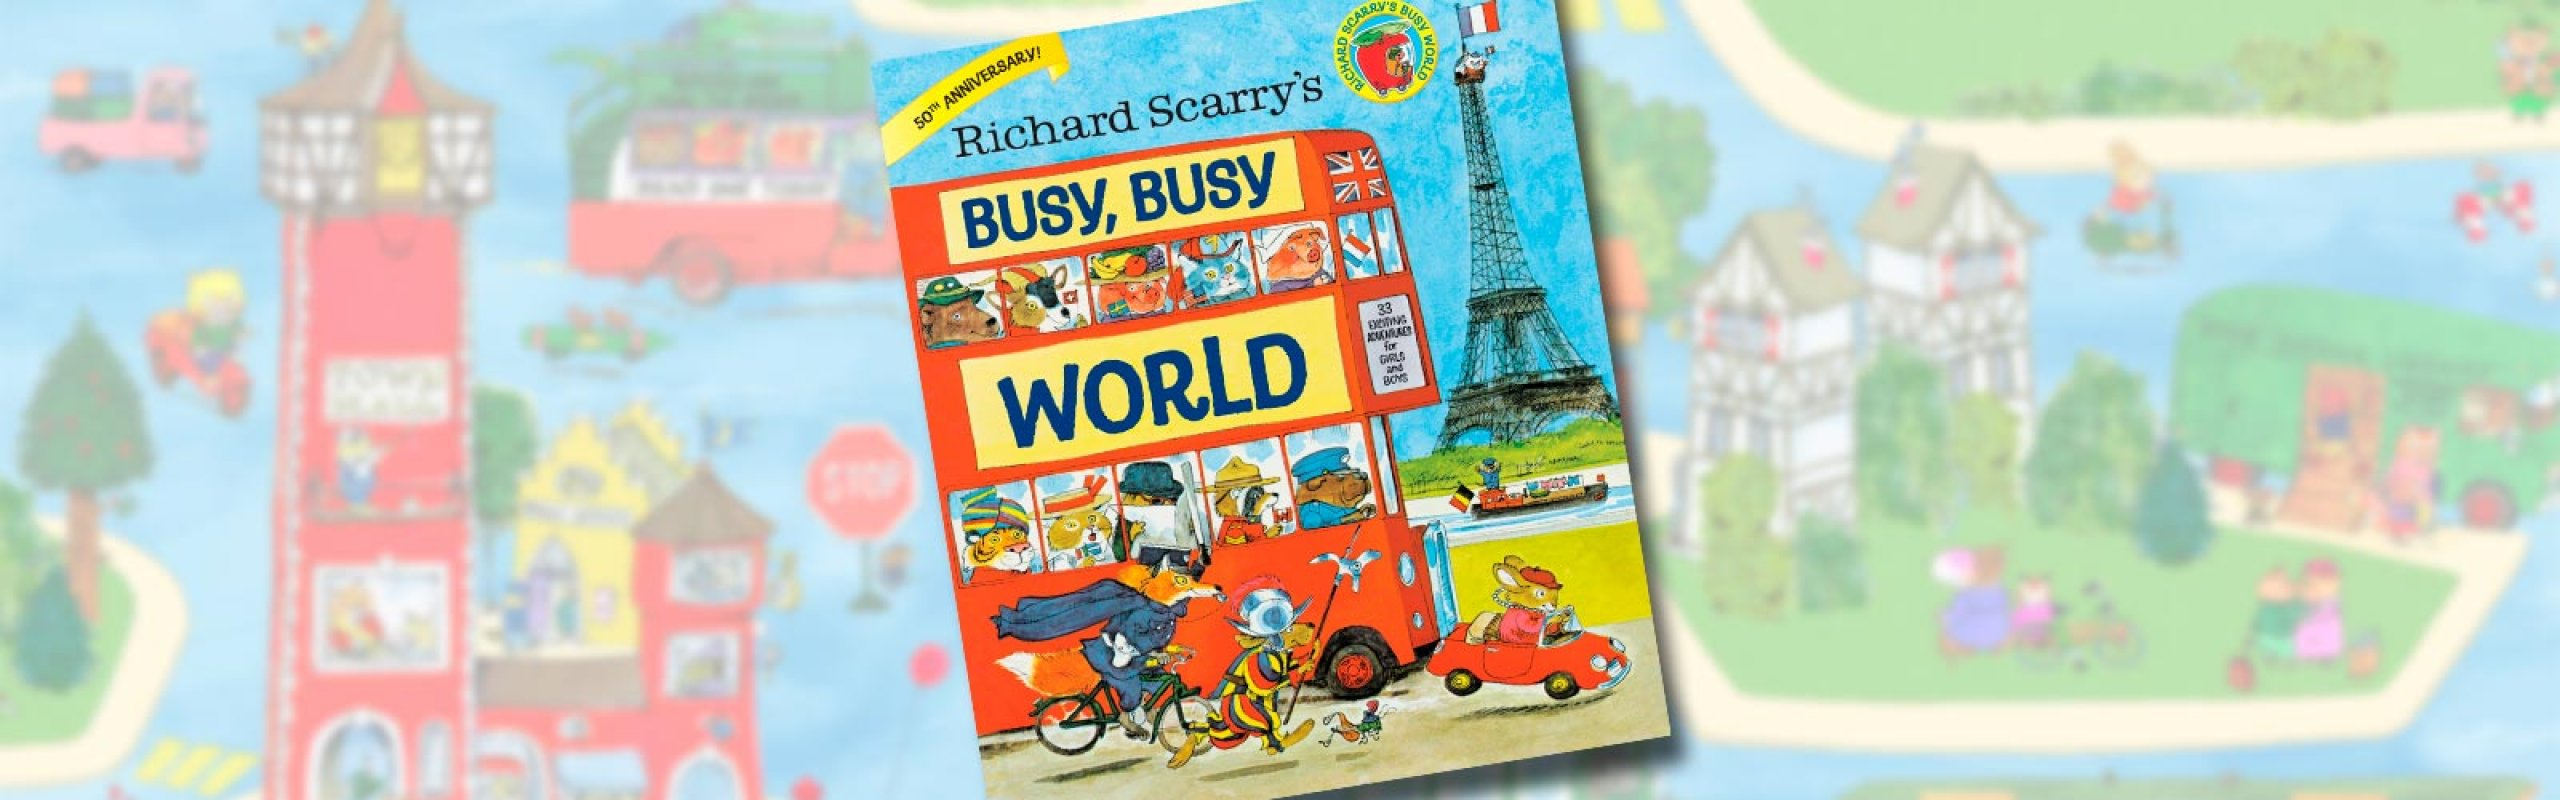 It's Storytime! BUSY, BUSY WORLD by Richard Scarry